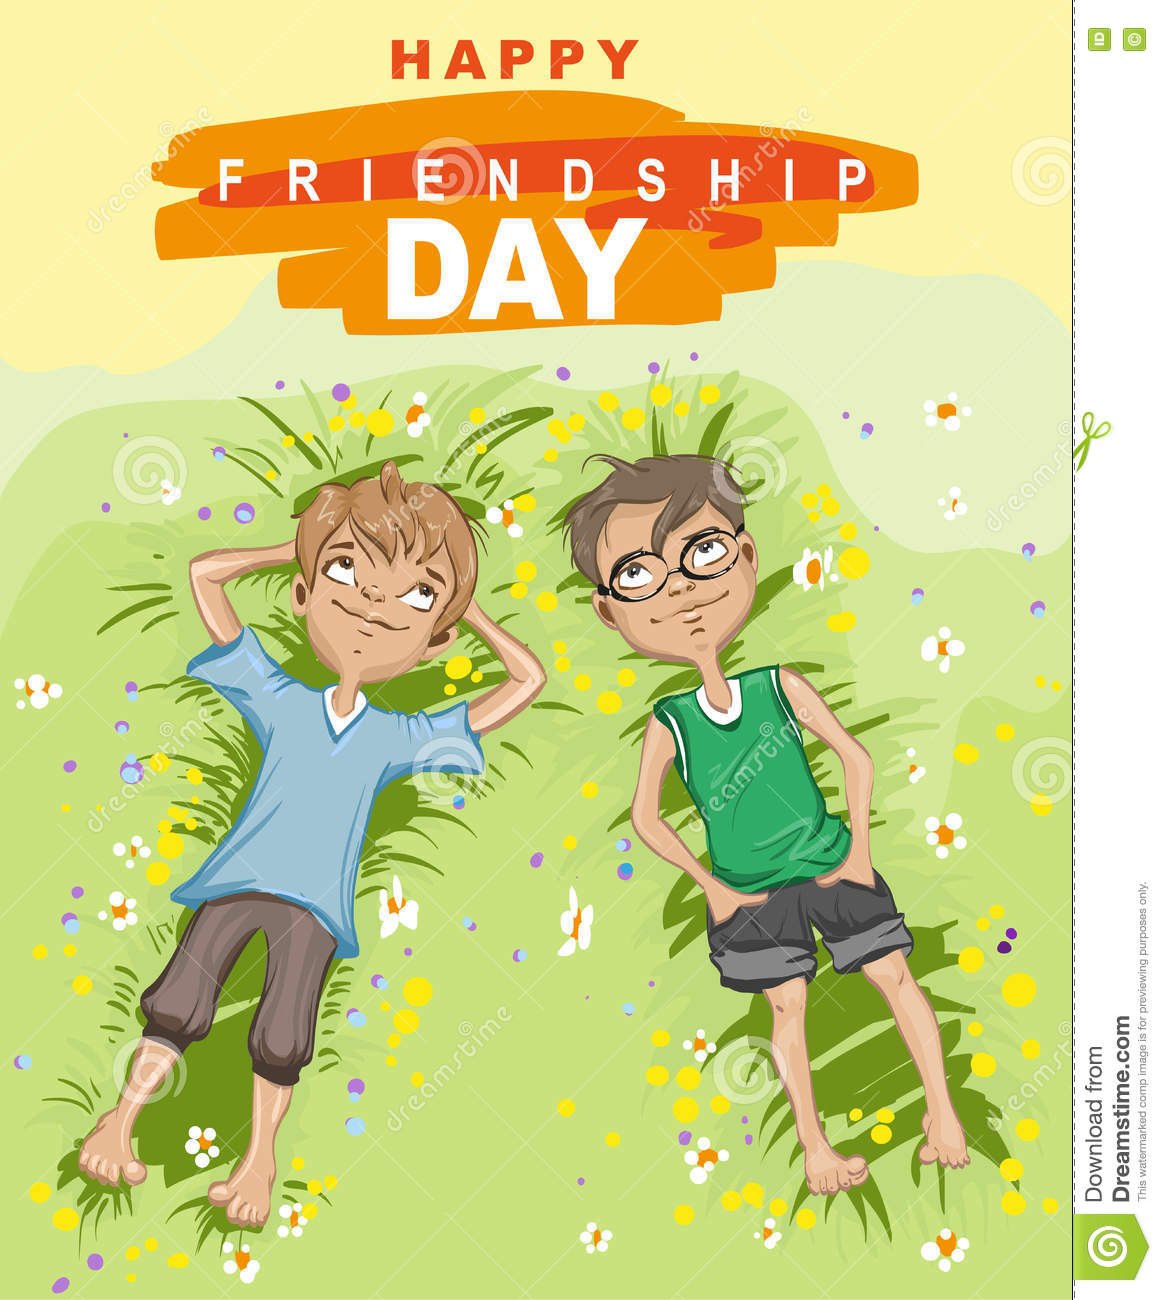 Happy Friendship Day. Two Boy Lying On Green Grass And Looking Up